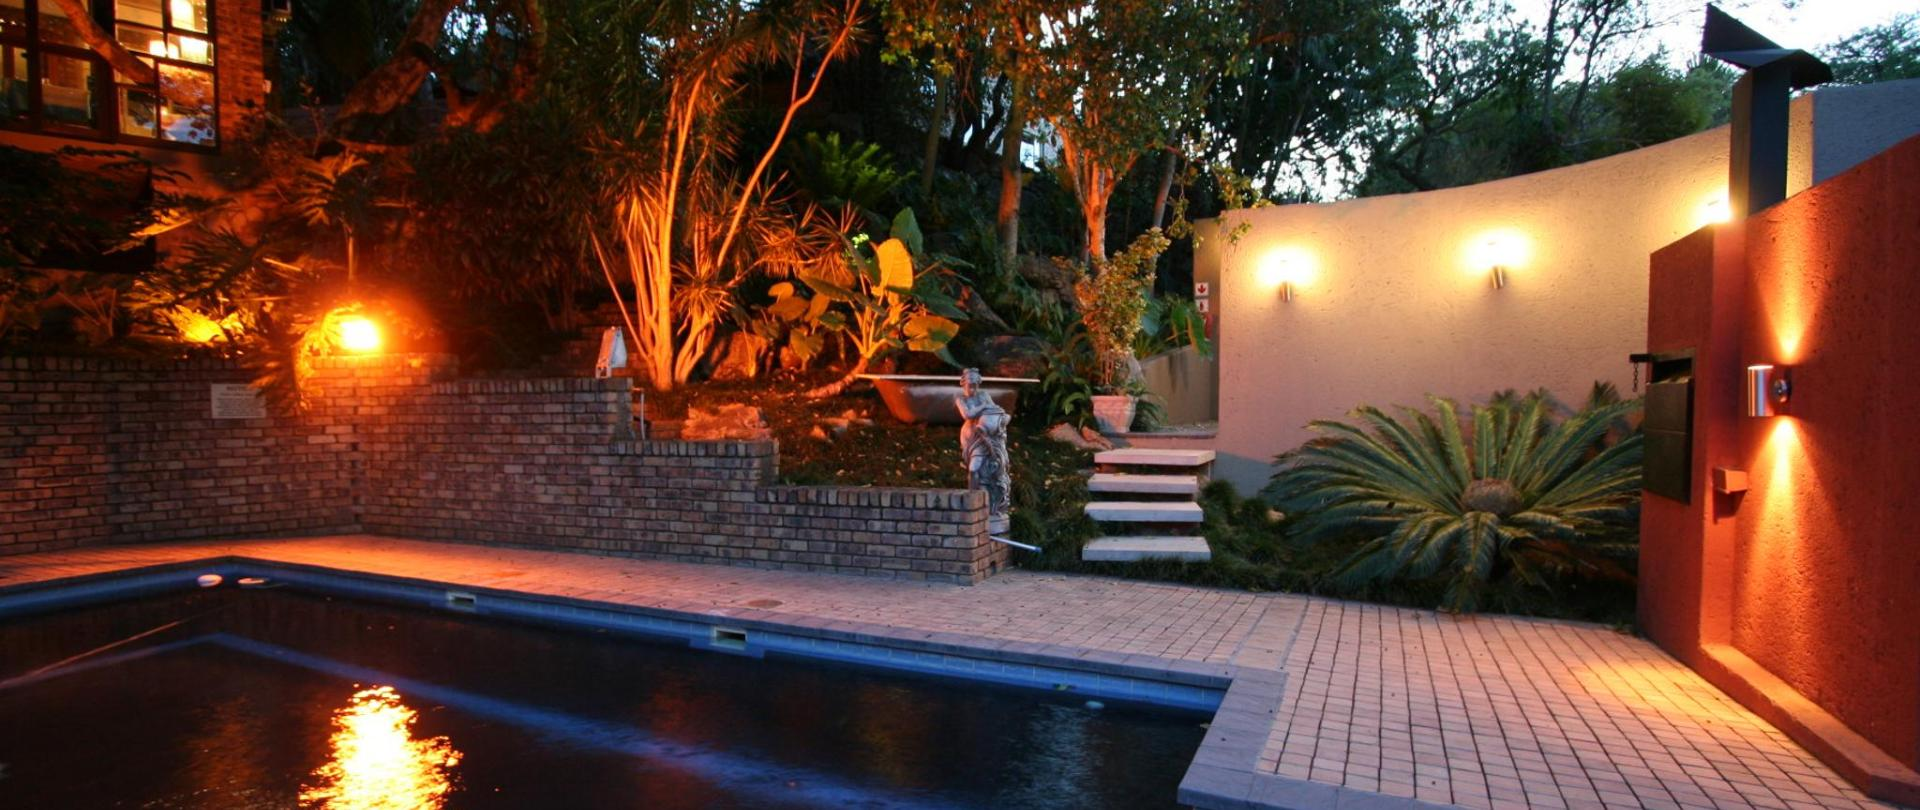 view pool and barbecue area at pool pic 2.JPG